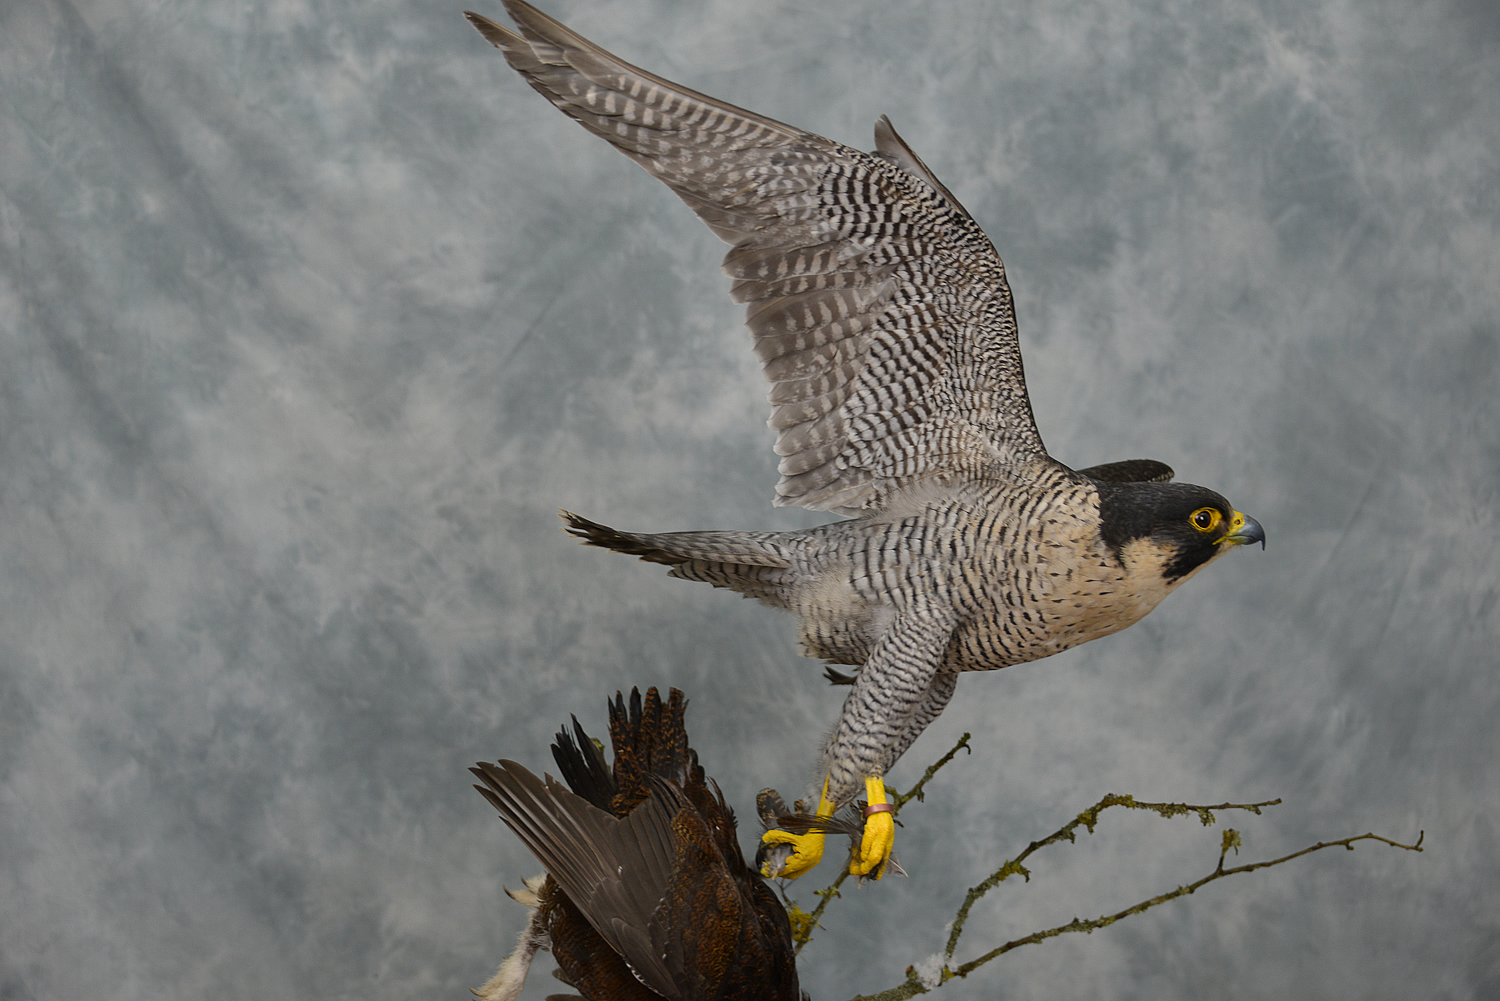 Taxidermy Peregrine Falcon falco peregrinus catching Grouse 15